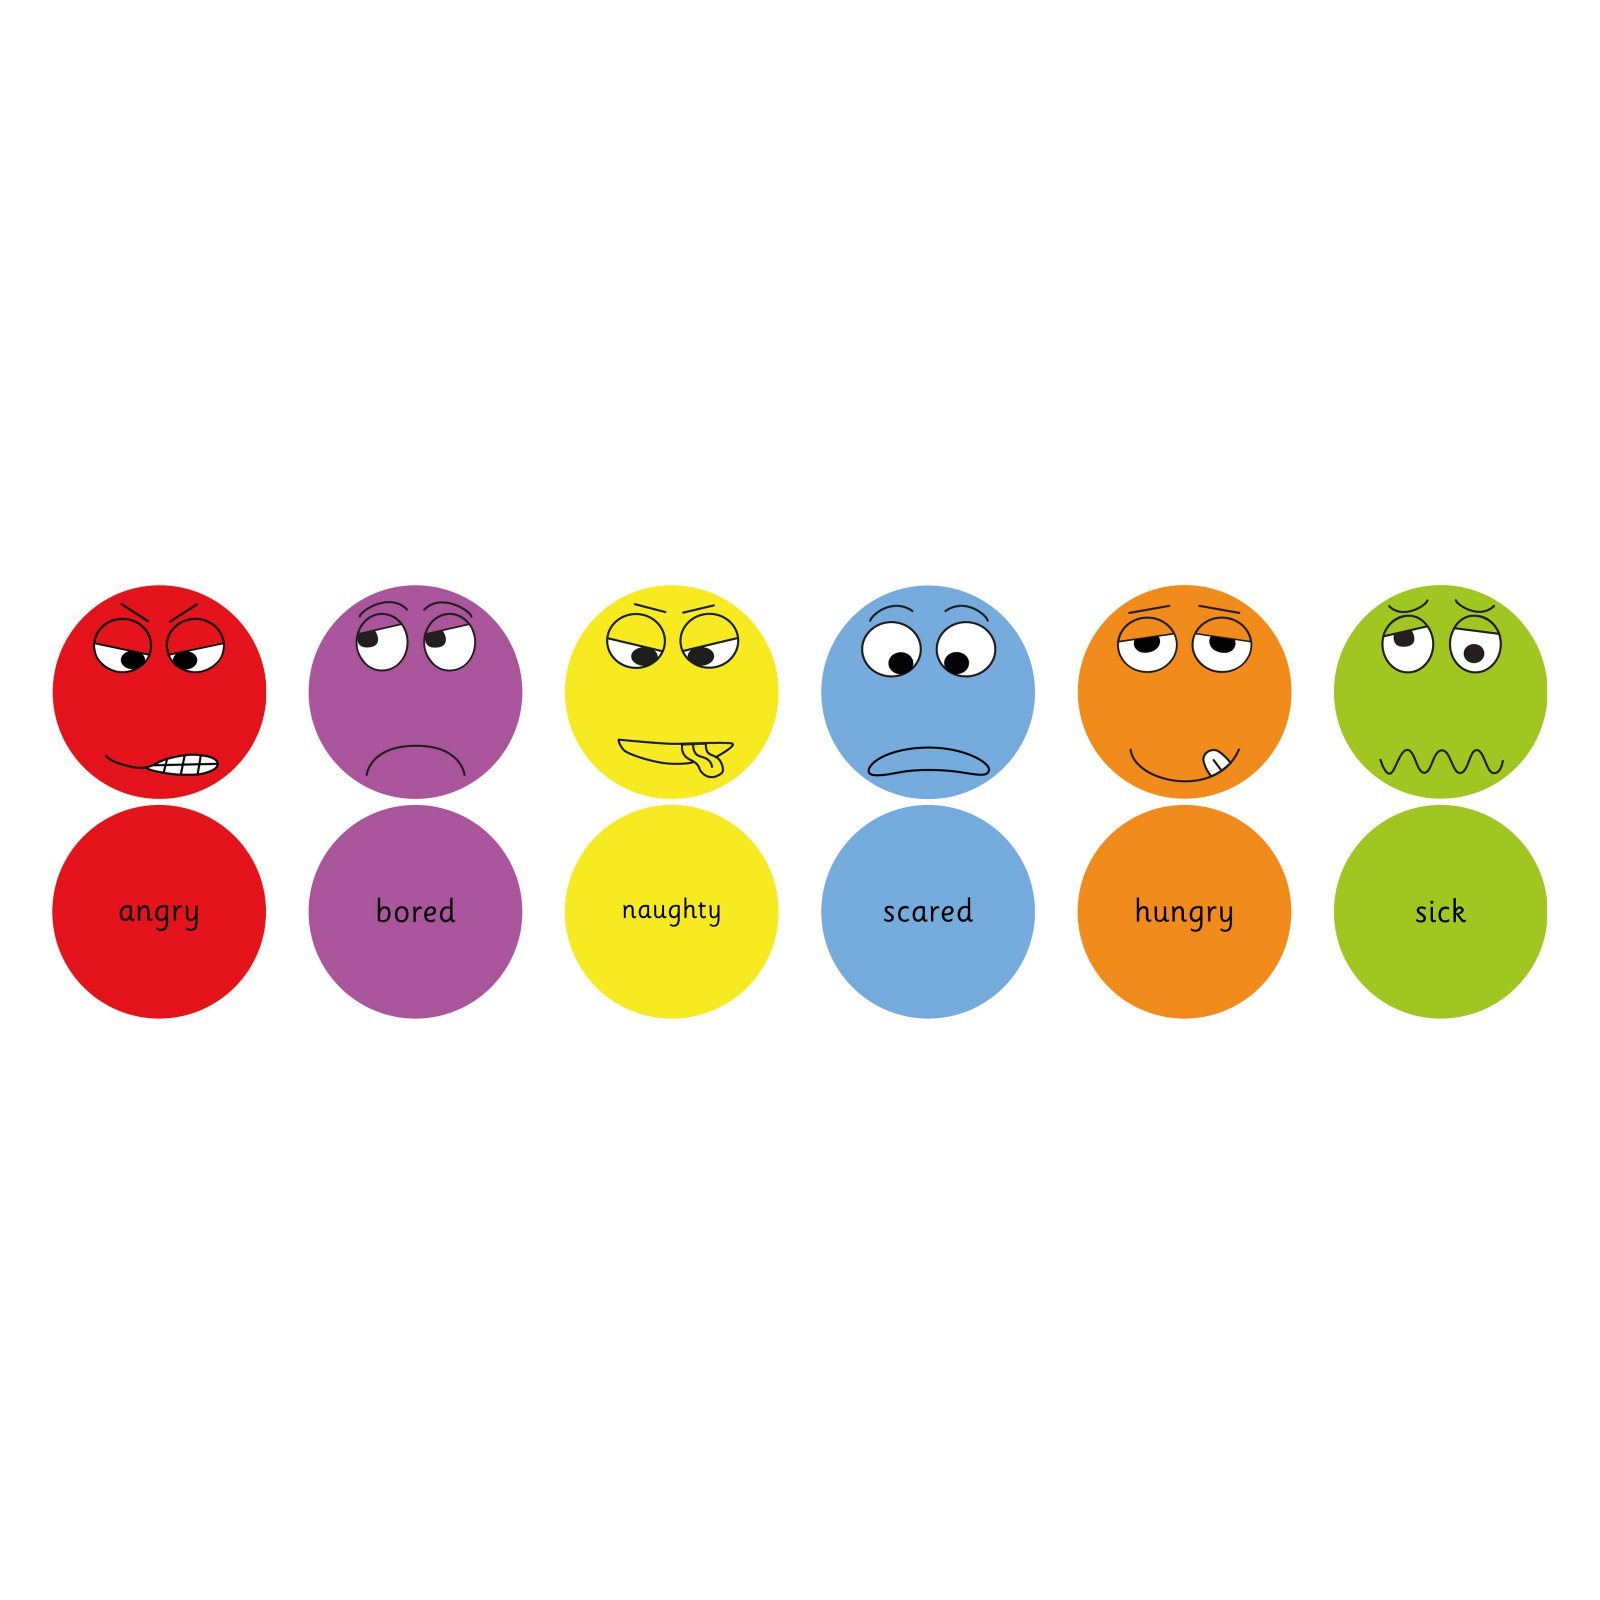 Kalokids English Emotions Floor Cushions - Pack 1